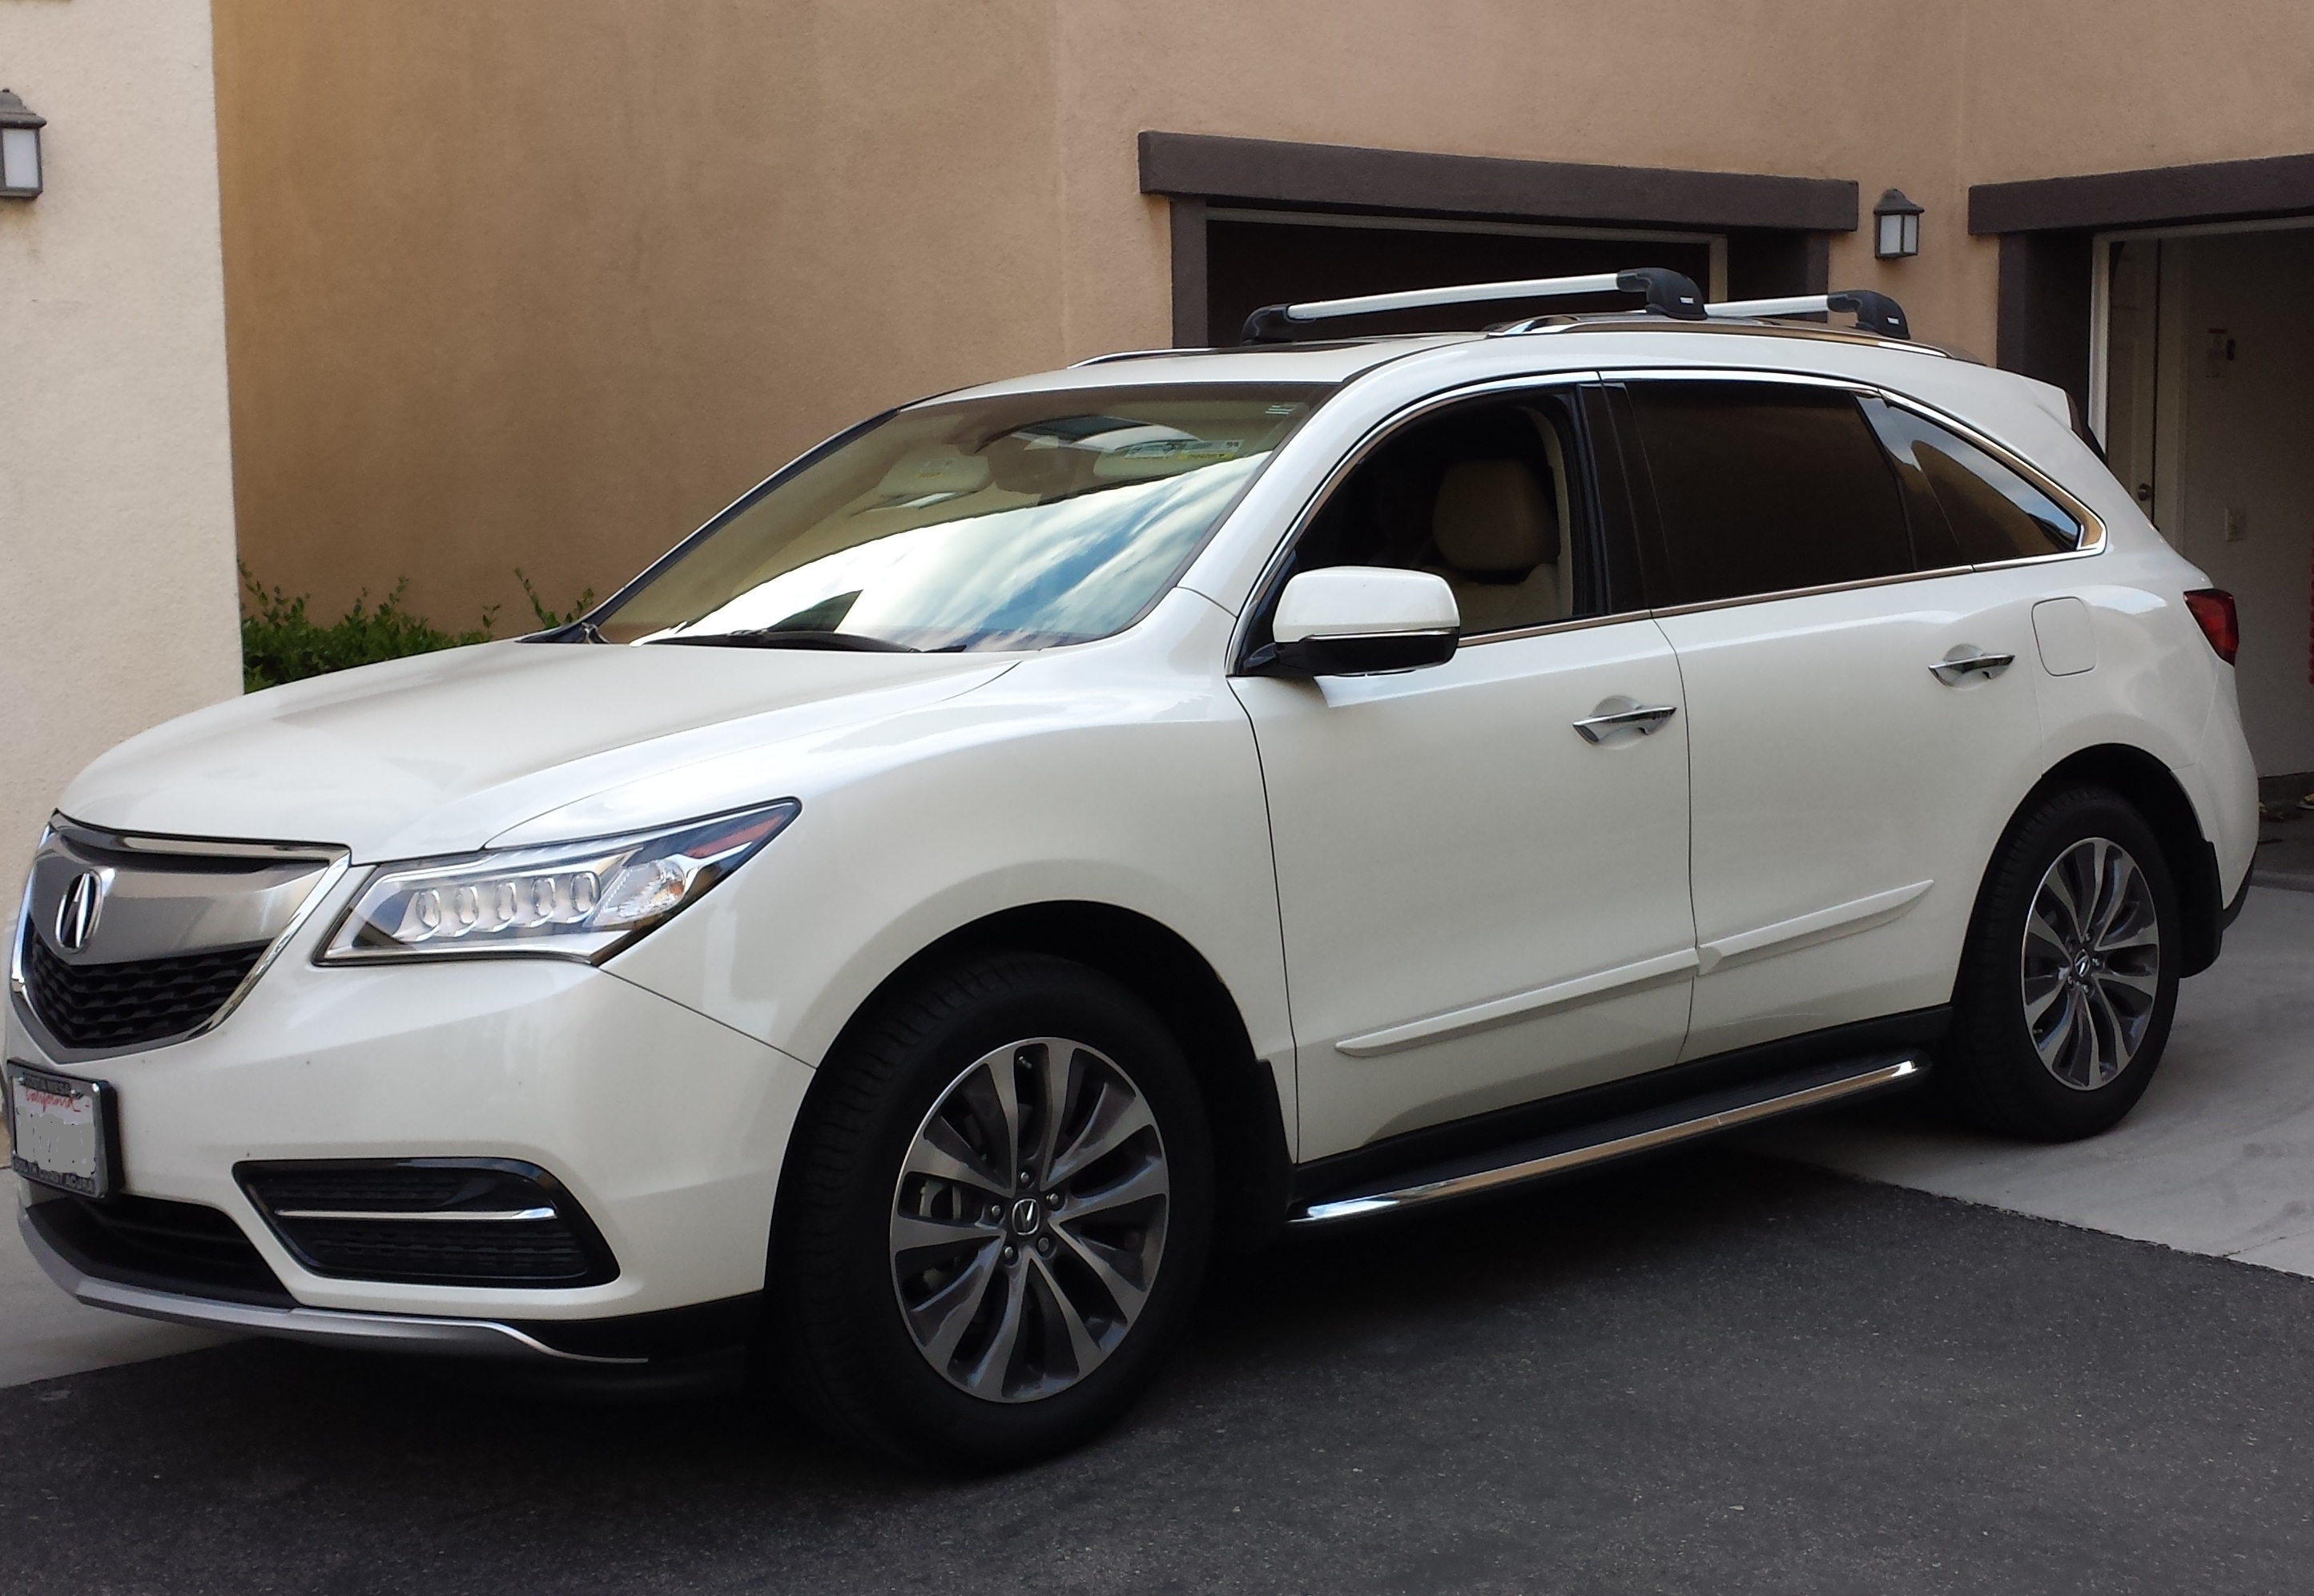 Factory Roof Rack Concerns Page Acura MDX Forum Acura MDX - Acura mdx roof rails